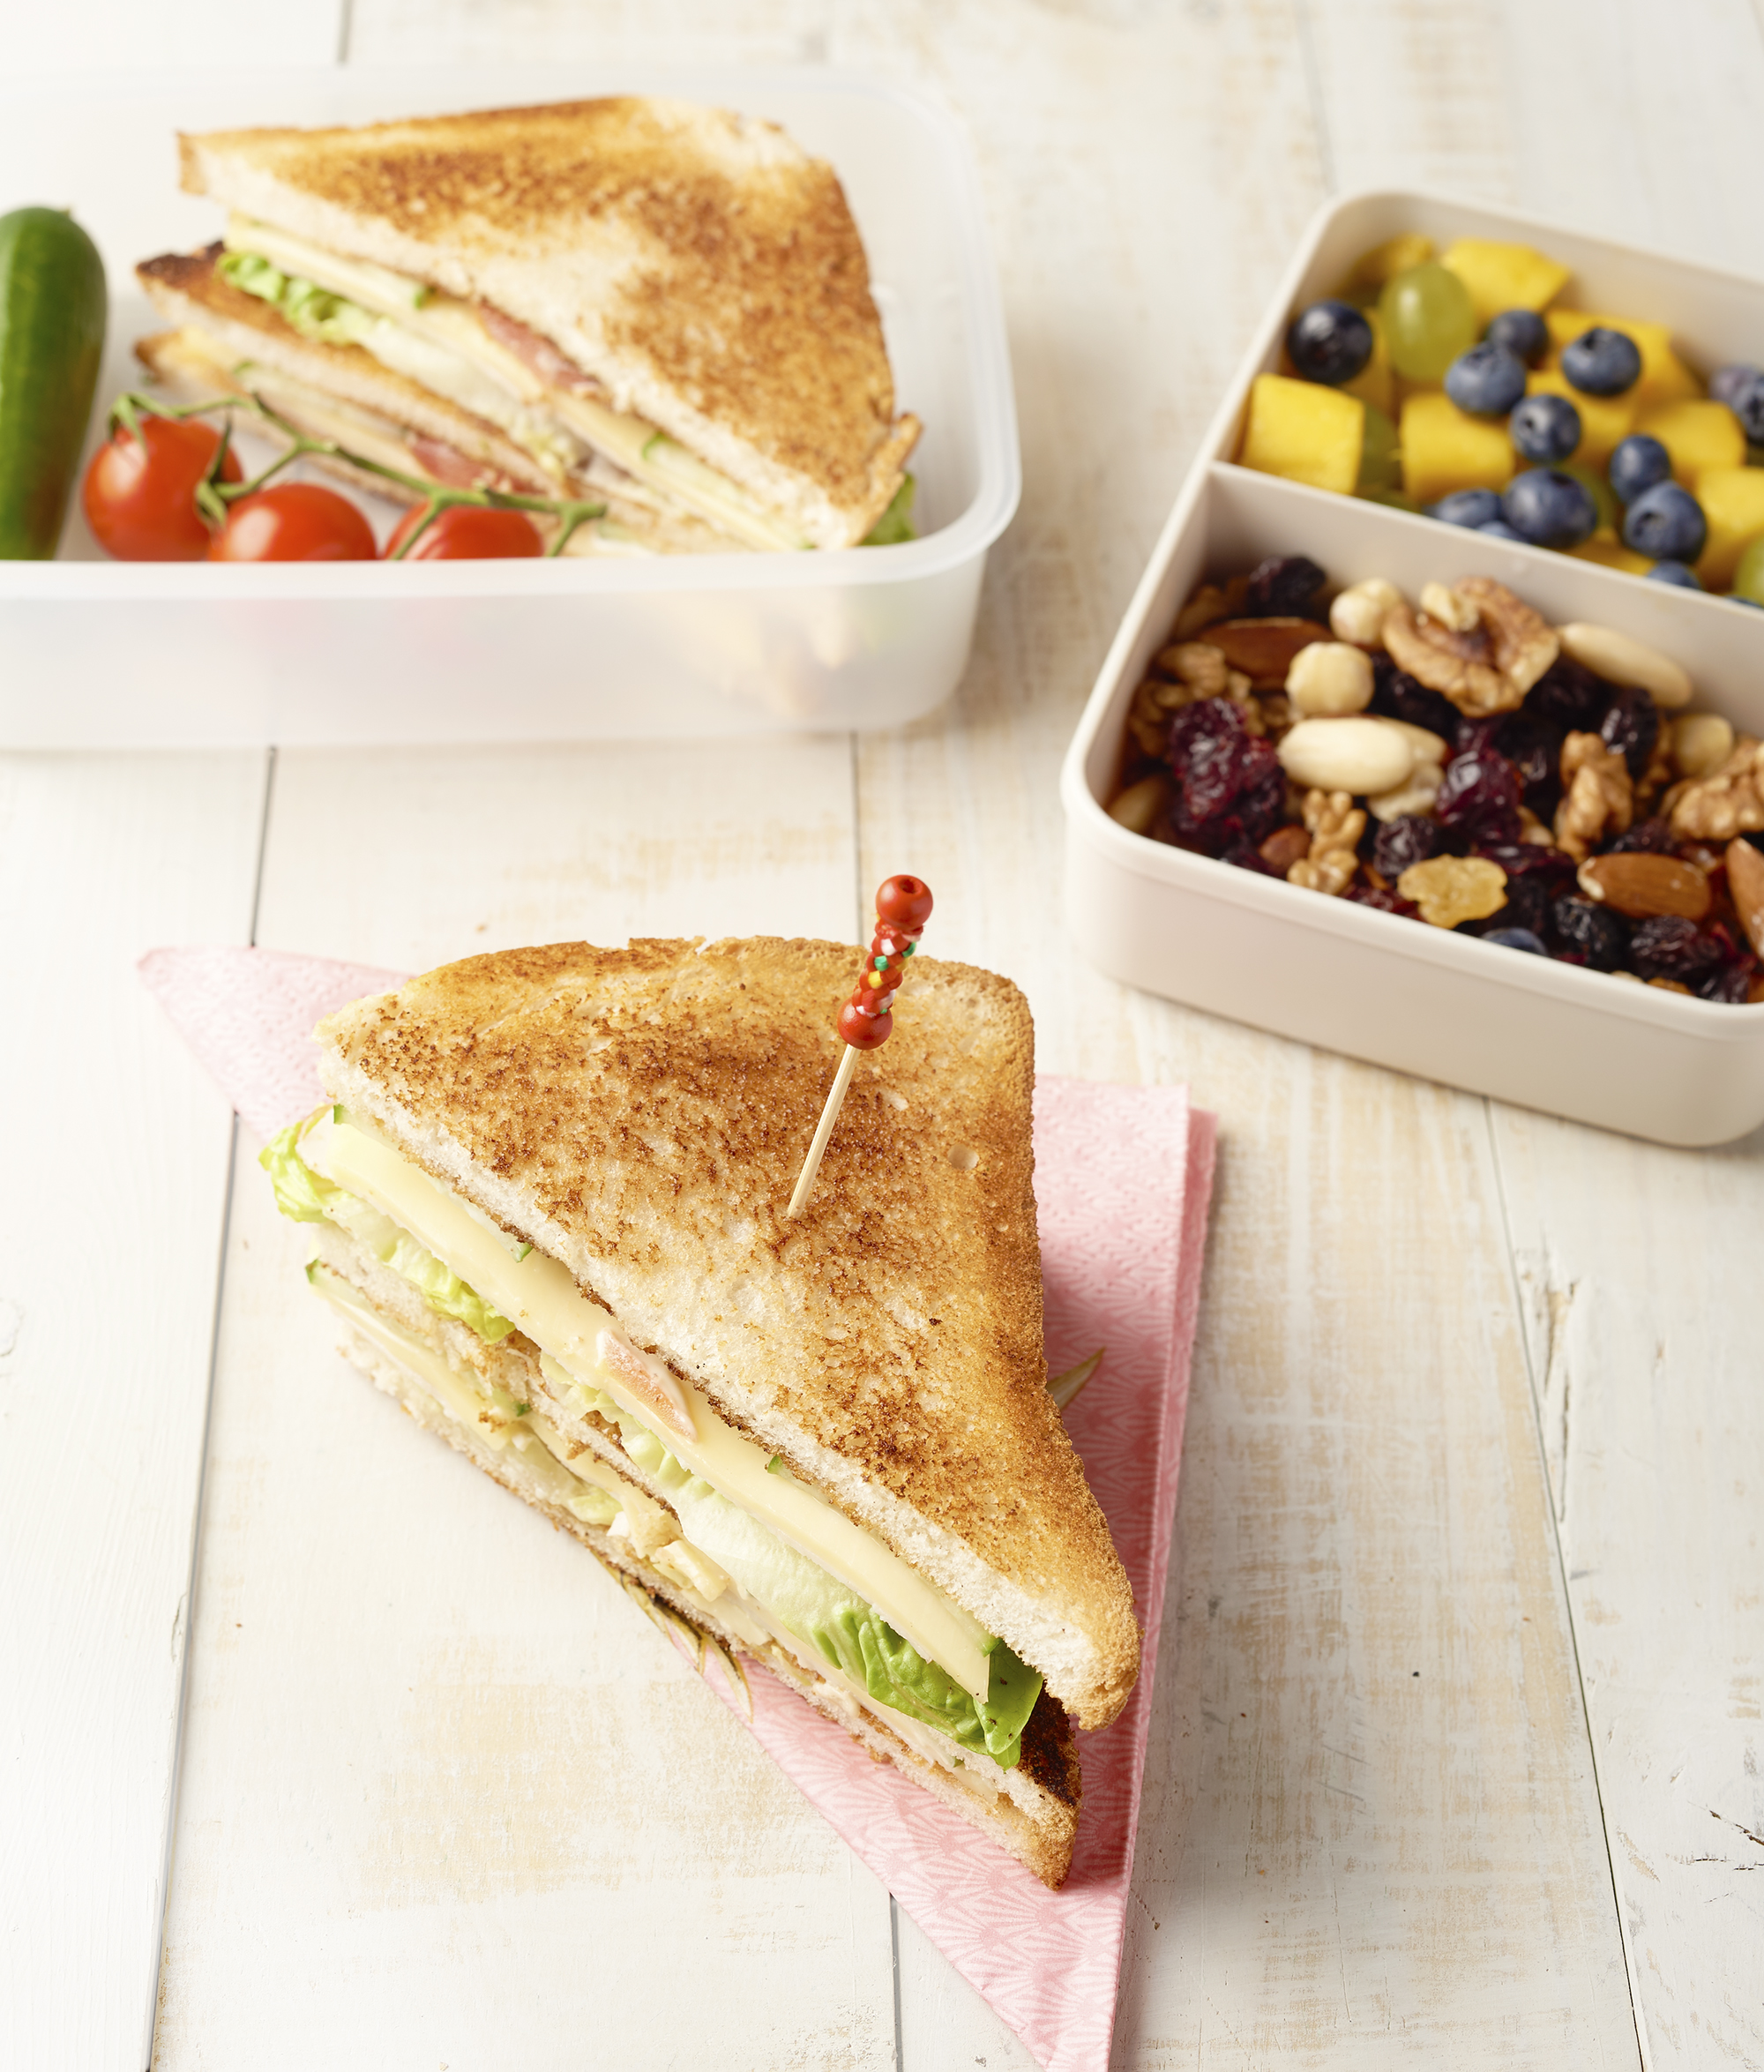 Club sandwich lunchbox